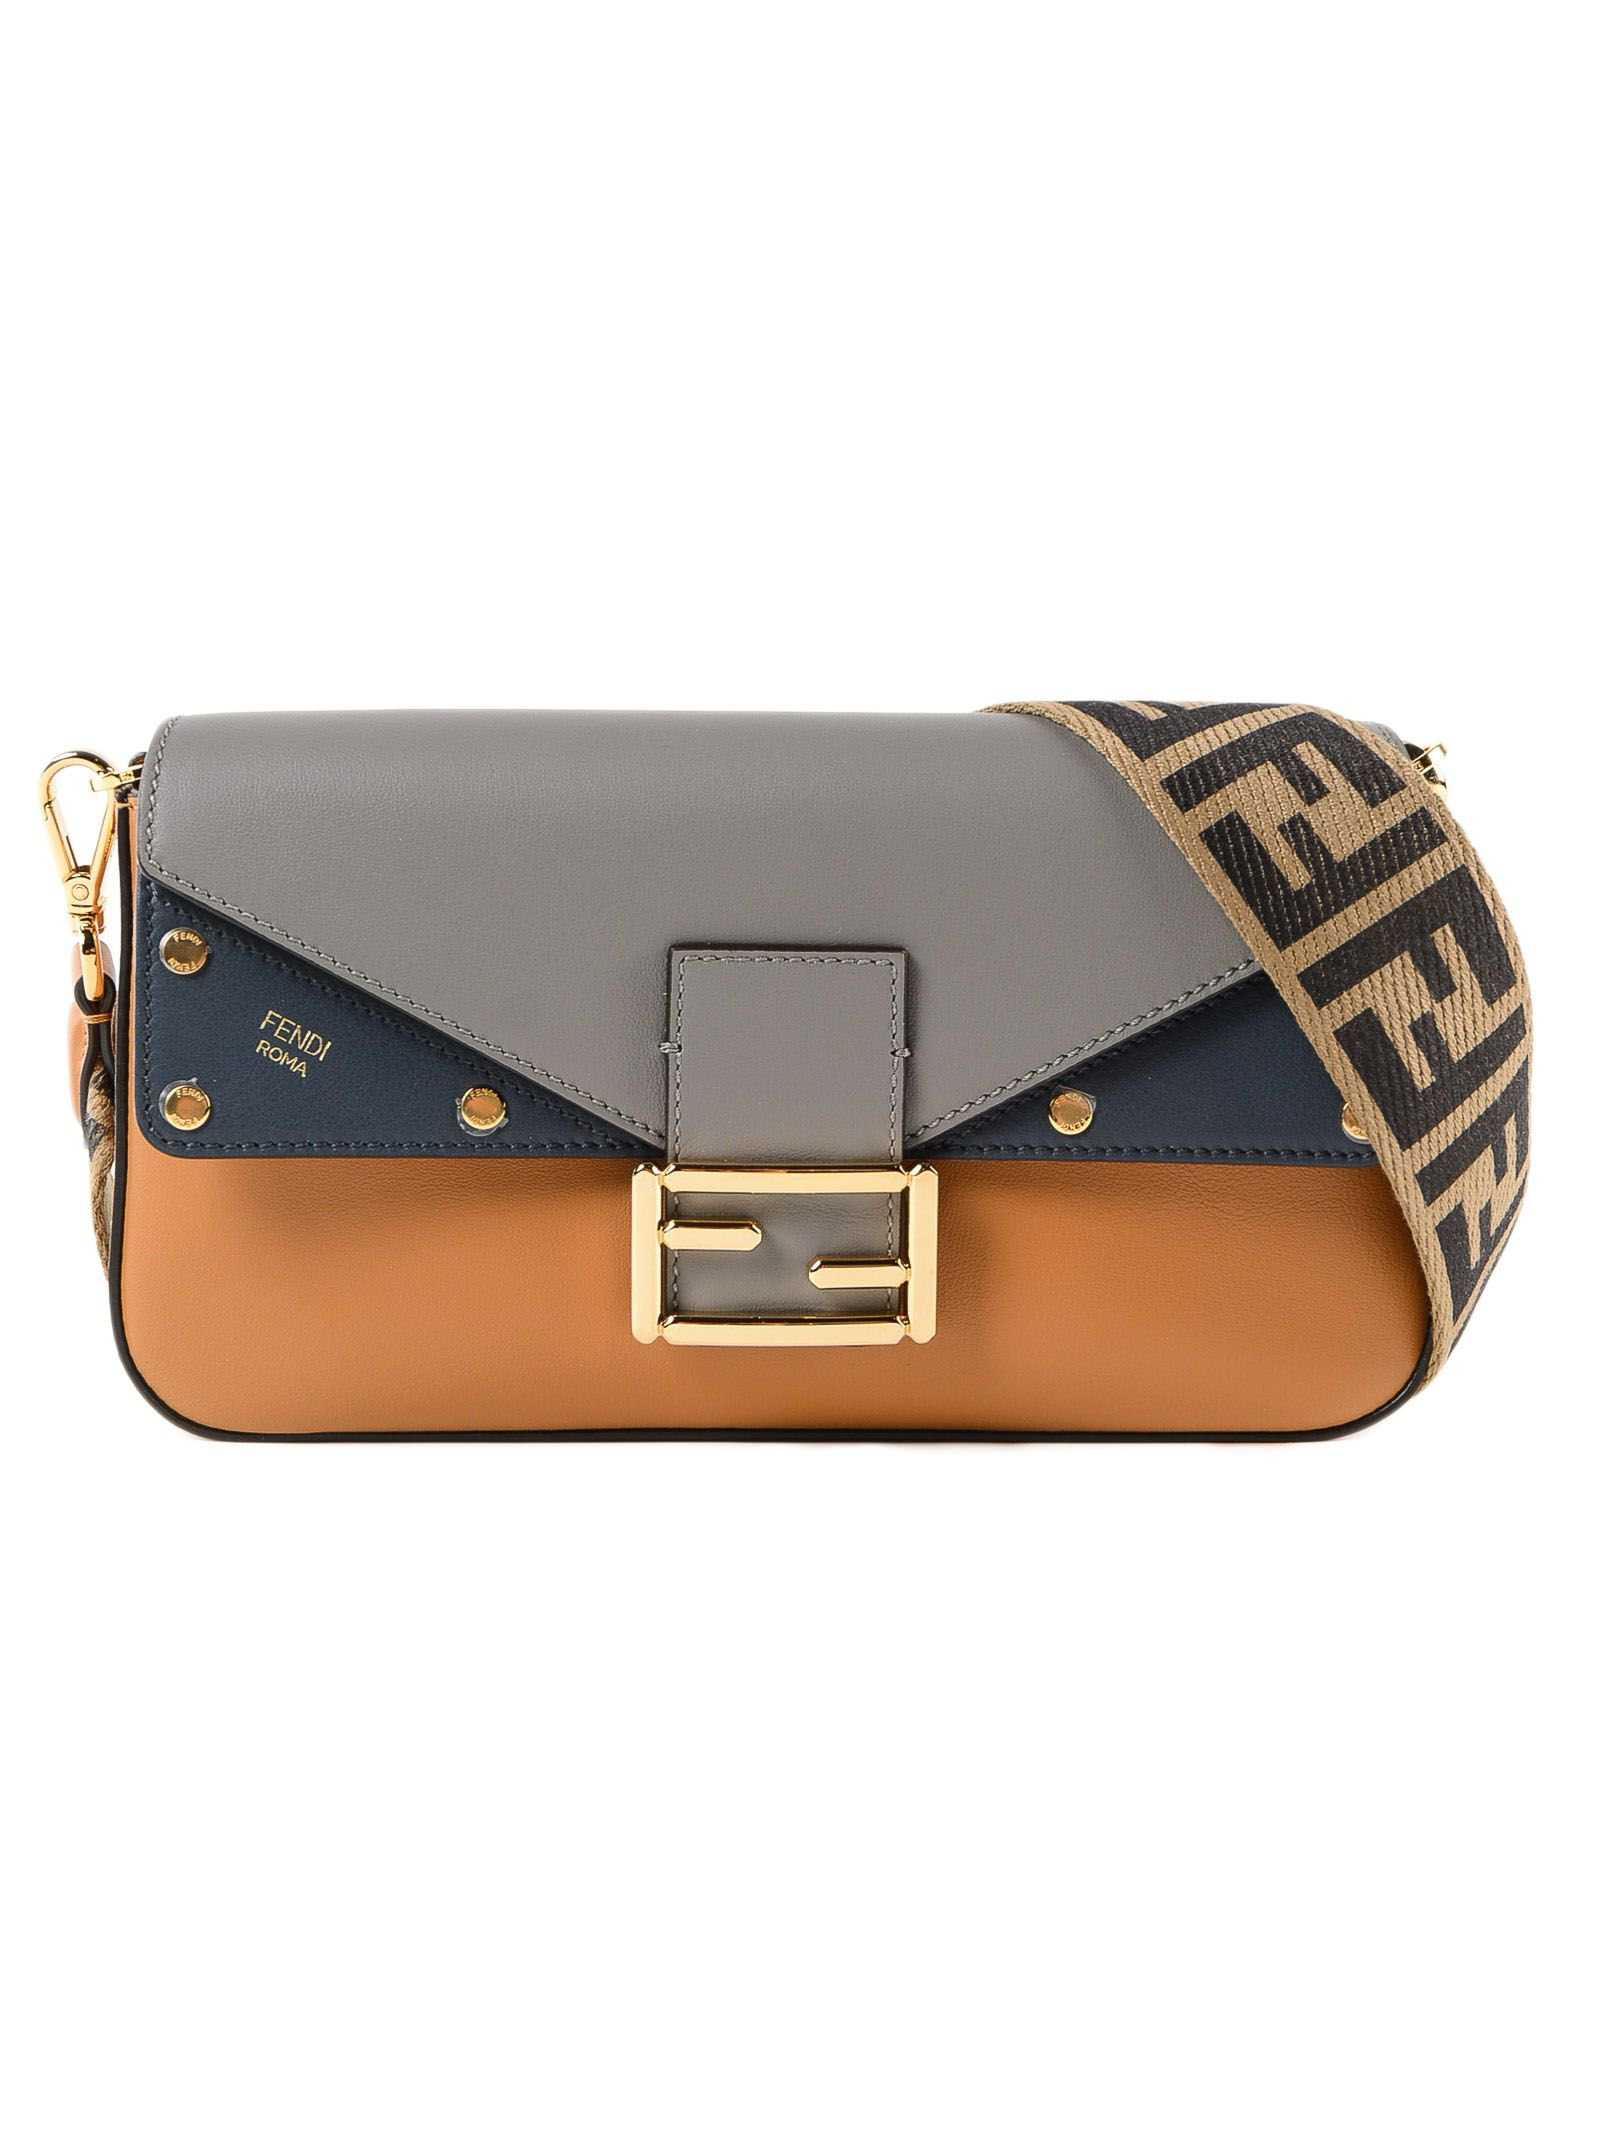 Fendi Baguette Shoulder Bag